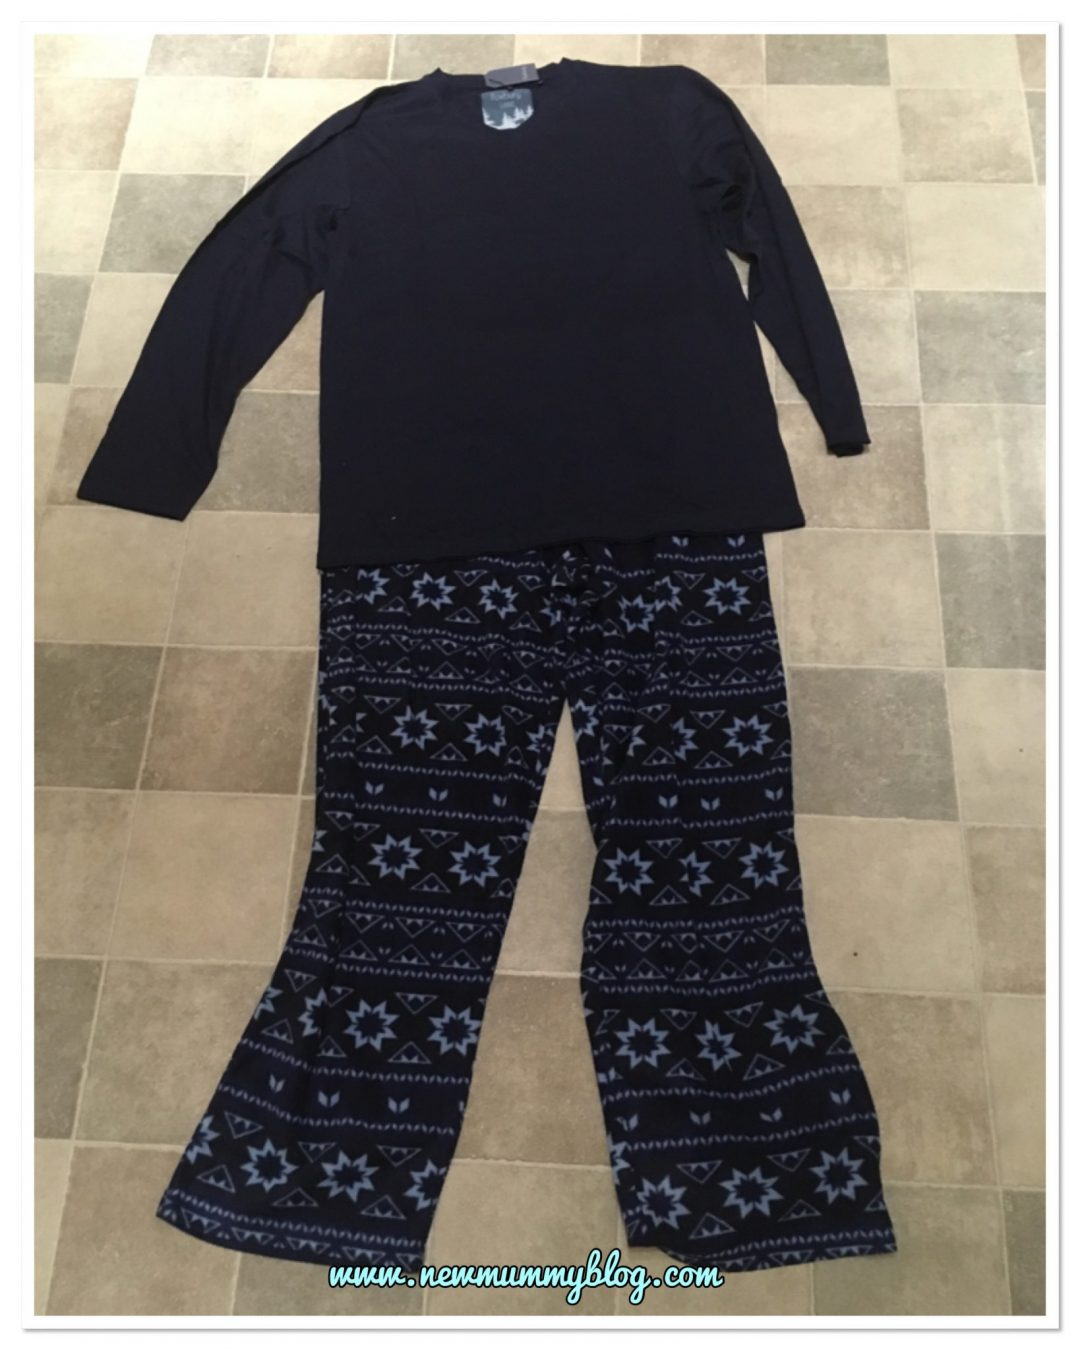 Pyjama Factory men's Christmas pjs - review new mummy blog